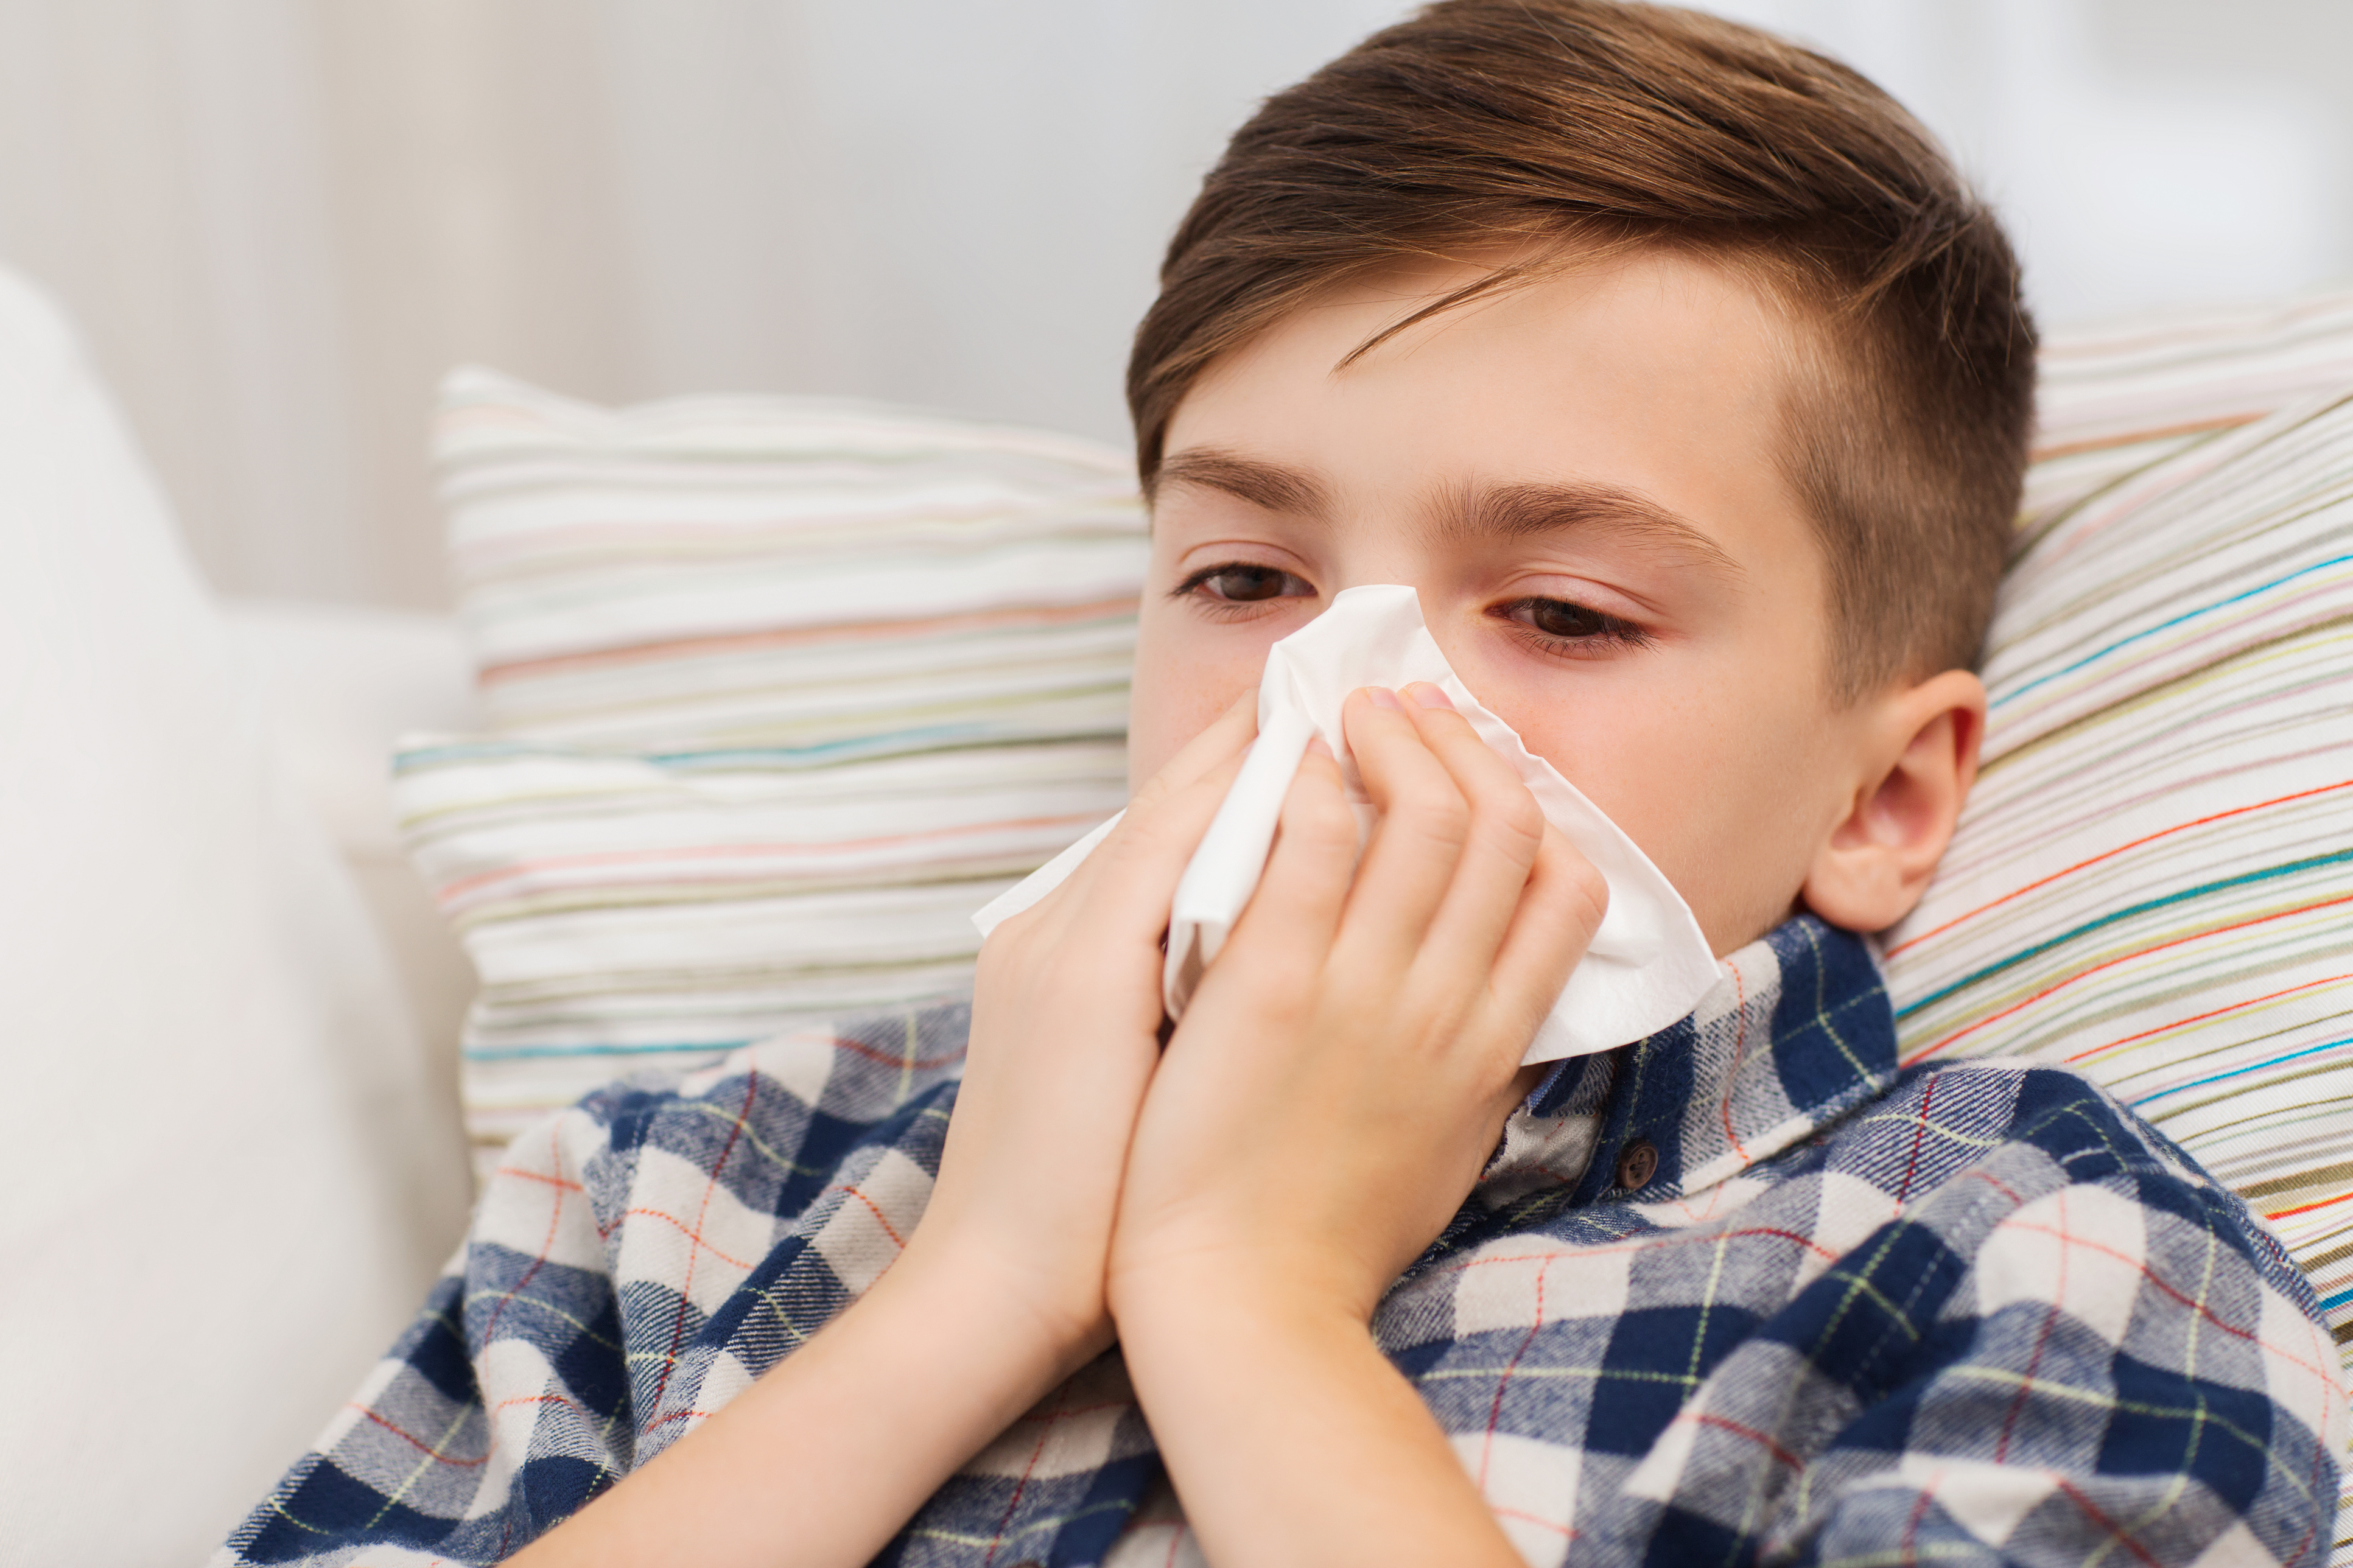 Colds-Flu-Cough-Too-Sick-for-School-Dennis-Thompson-ATC-Founding-partner-of-Excel-Therapy-Ardmore-Oklahoma-Physical-therapist-ardmore-oklahoma-physical-therapy-oklahoma